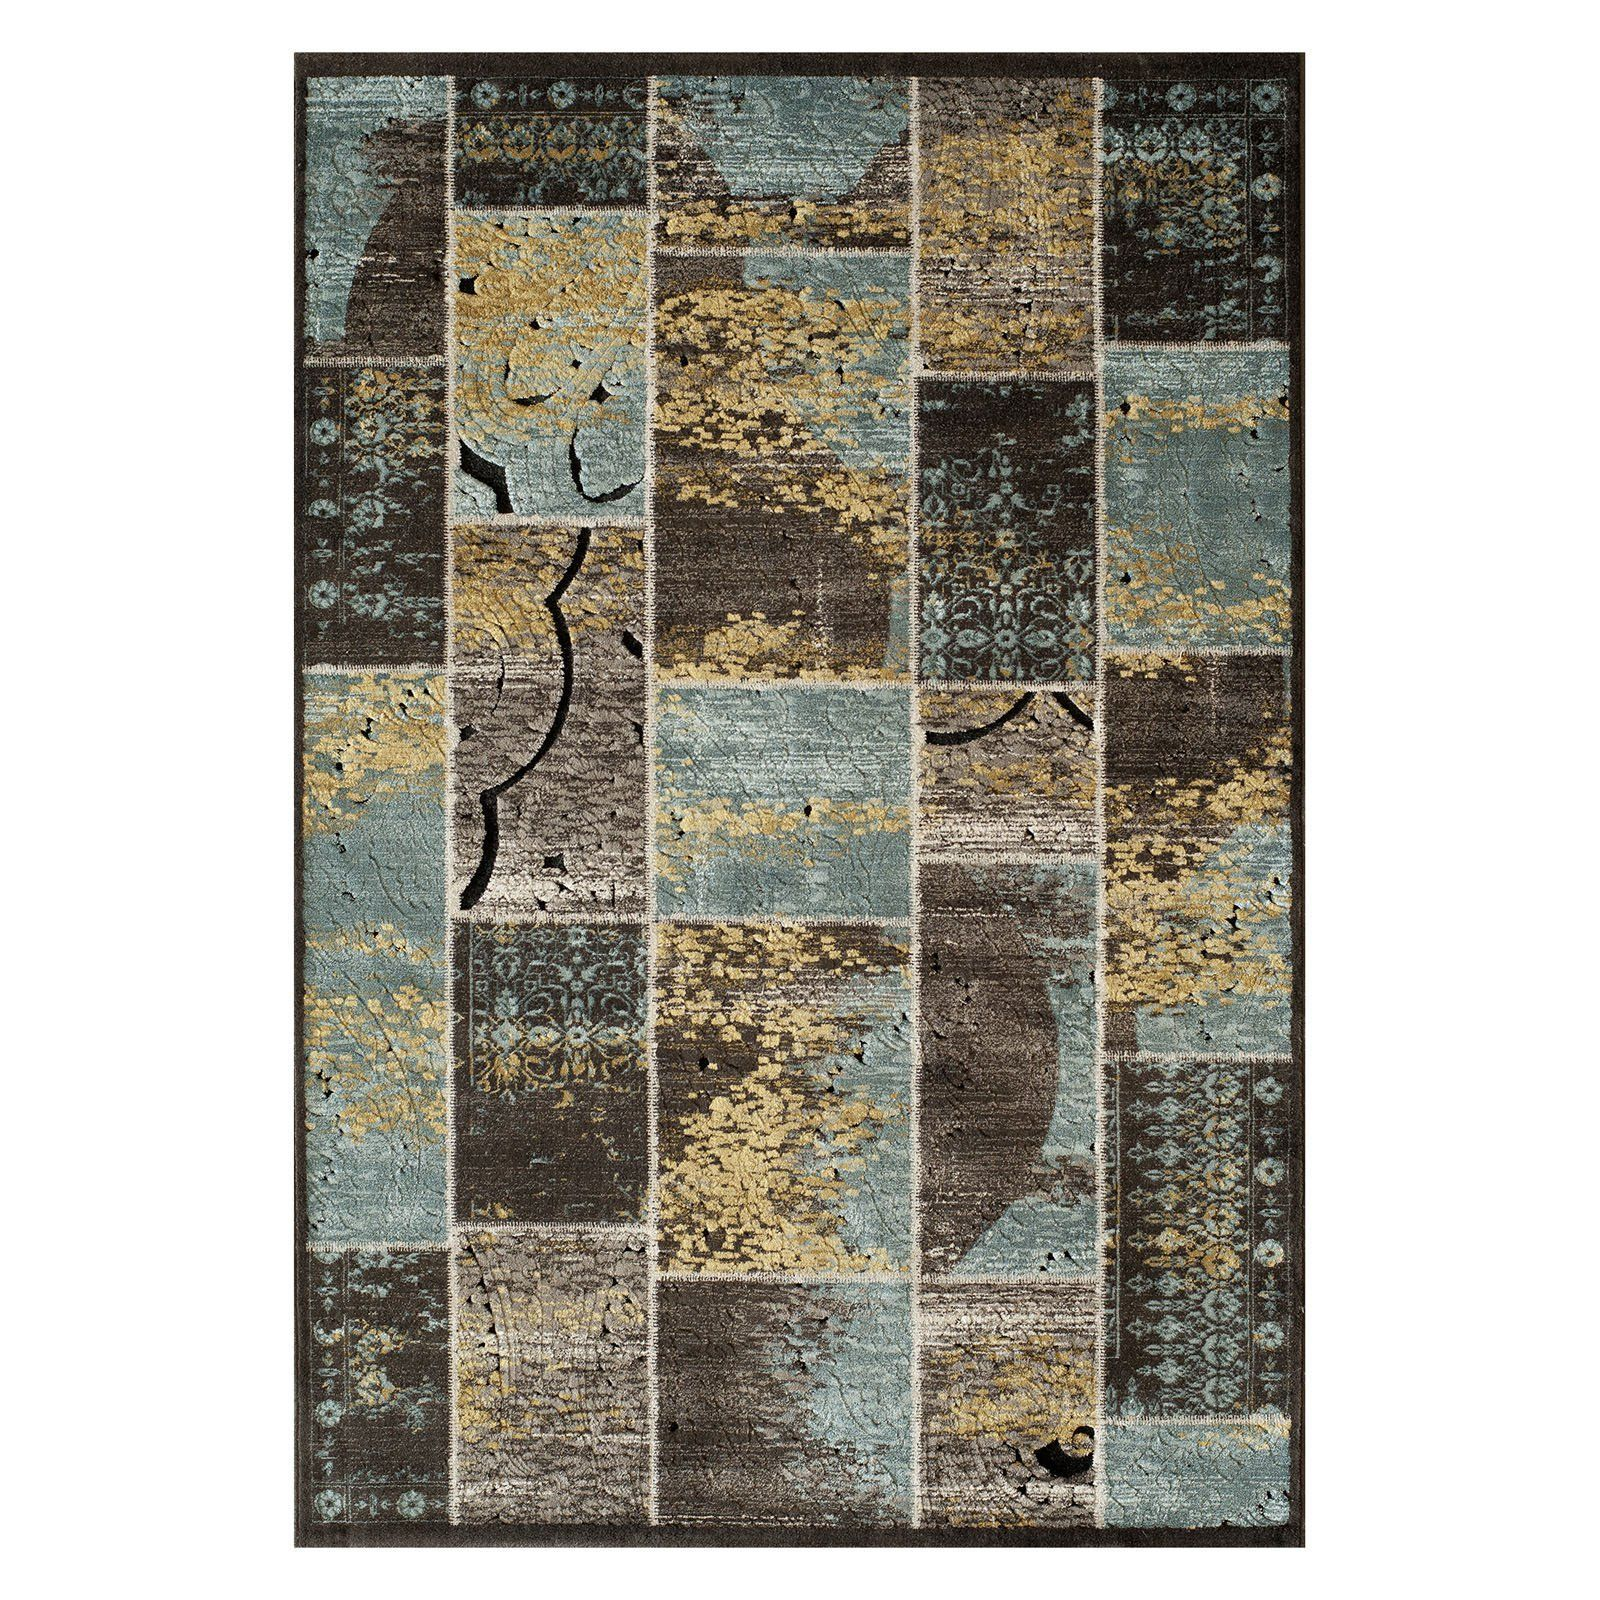 Momeni Vogue Collection VG-01 Rug - VOGUEVG-01BLU1827